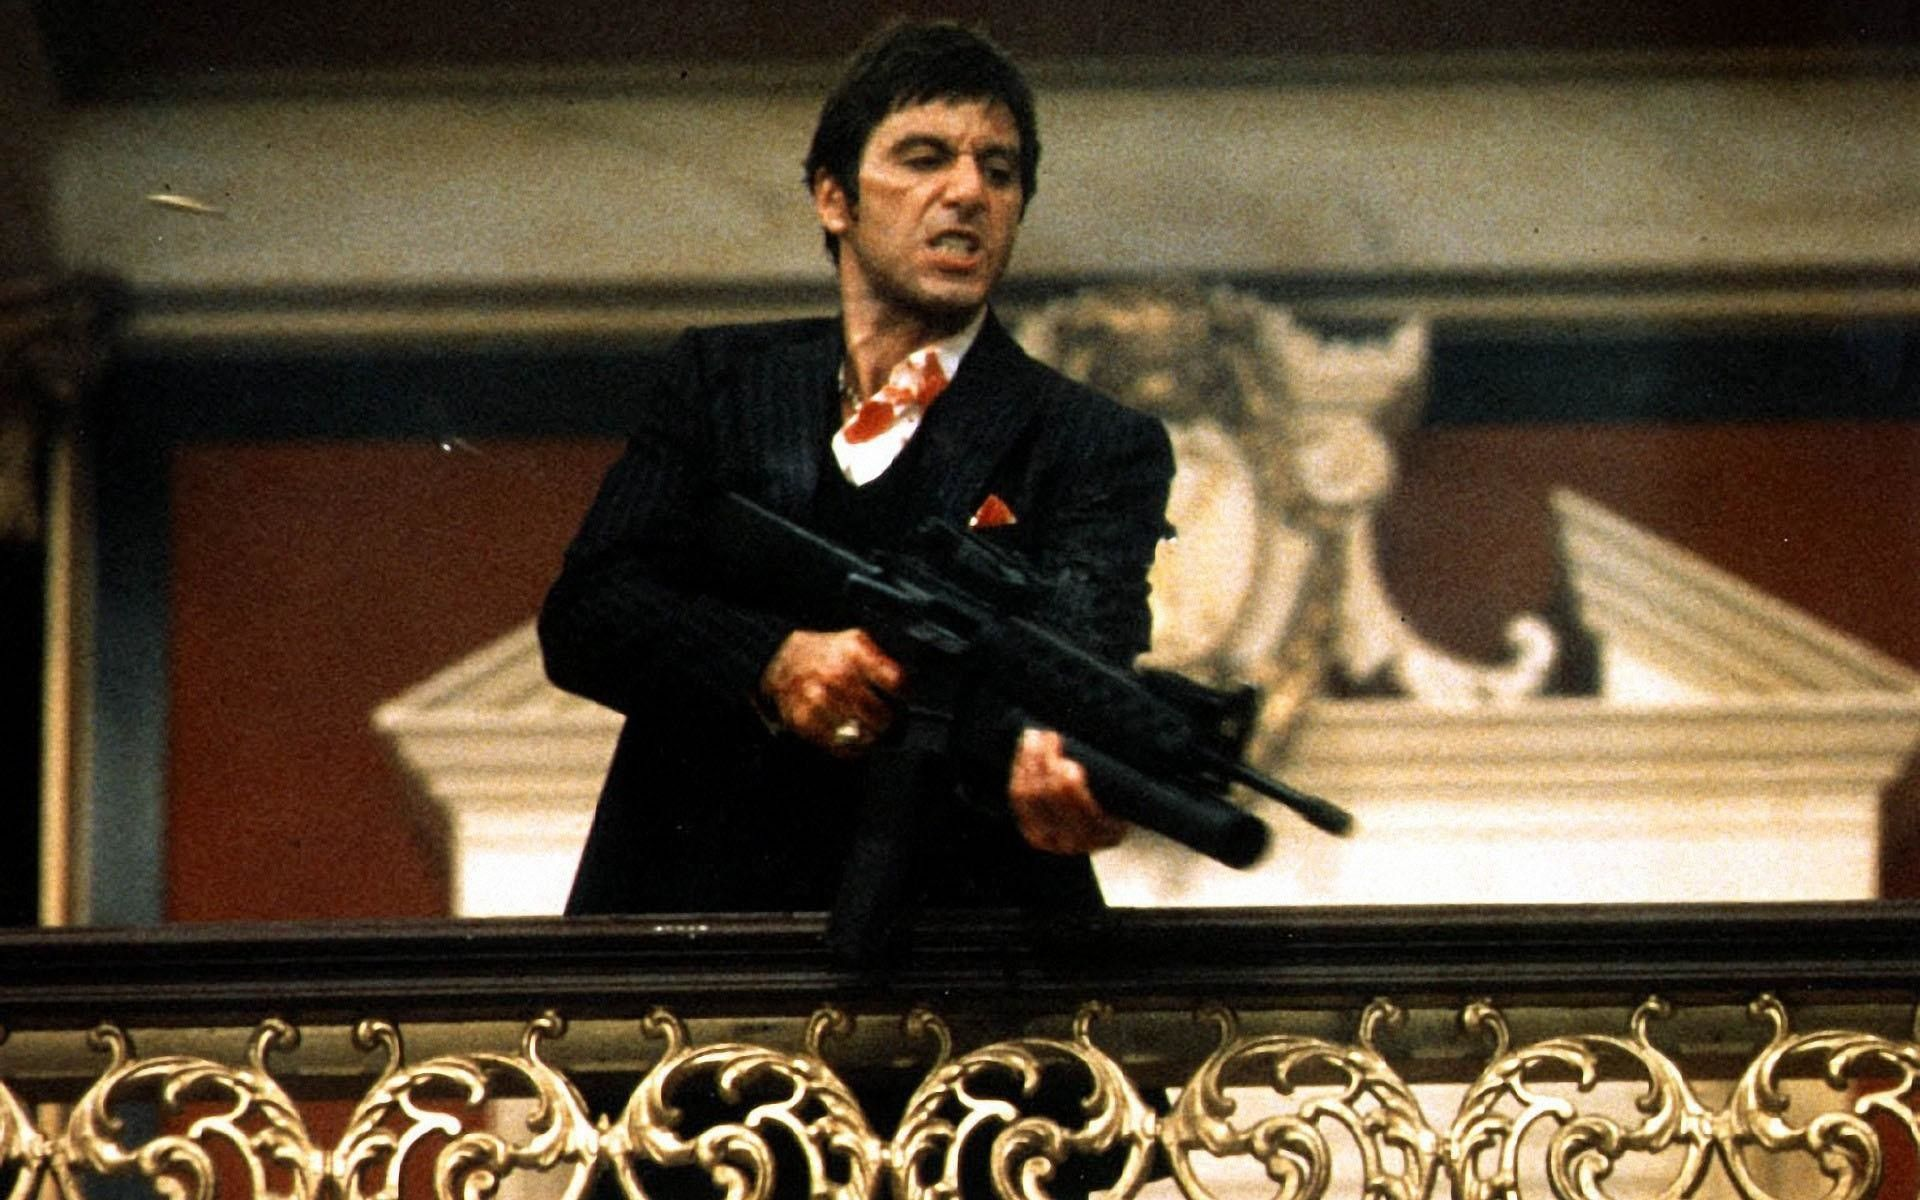 Scarface Wallpaper Hd 72 Images In 2019 Scarface Quotes